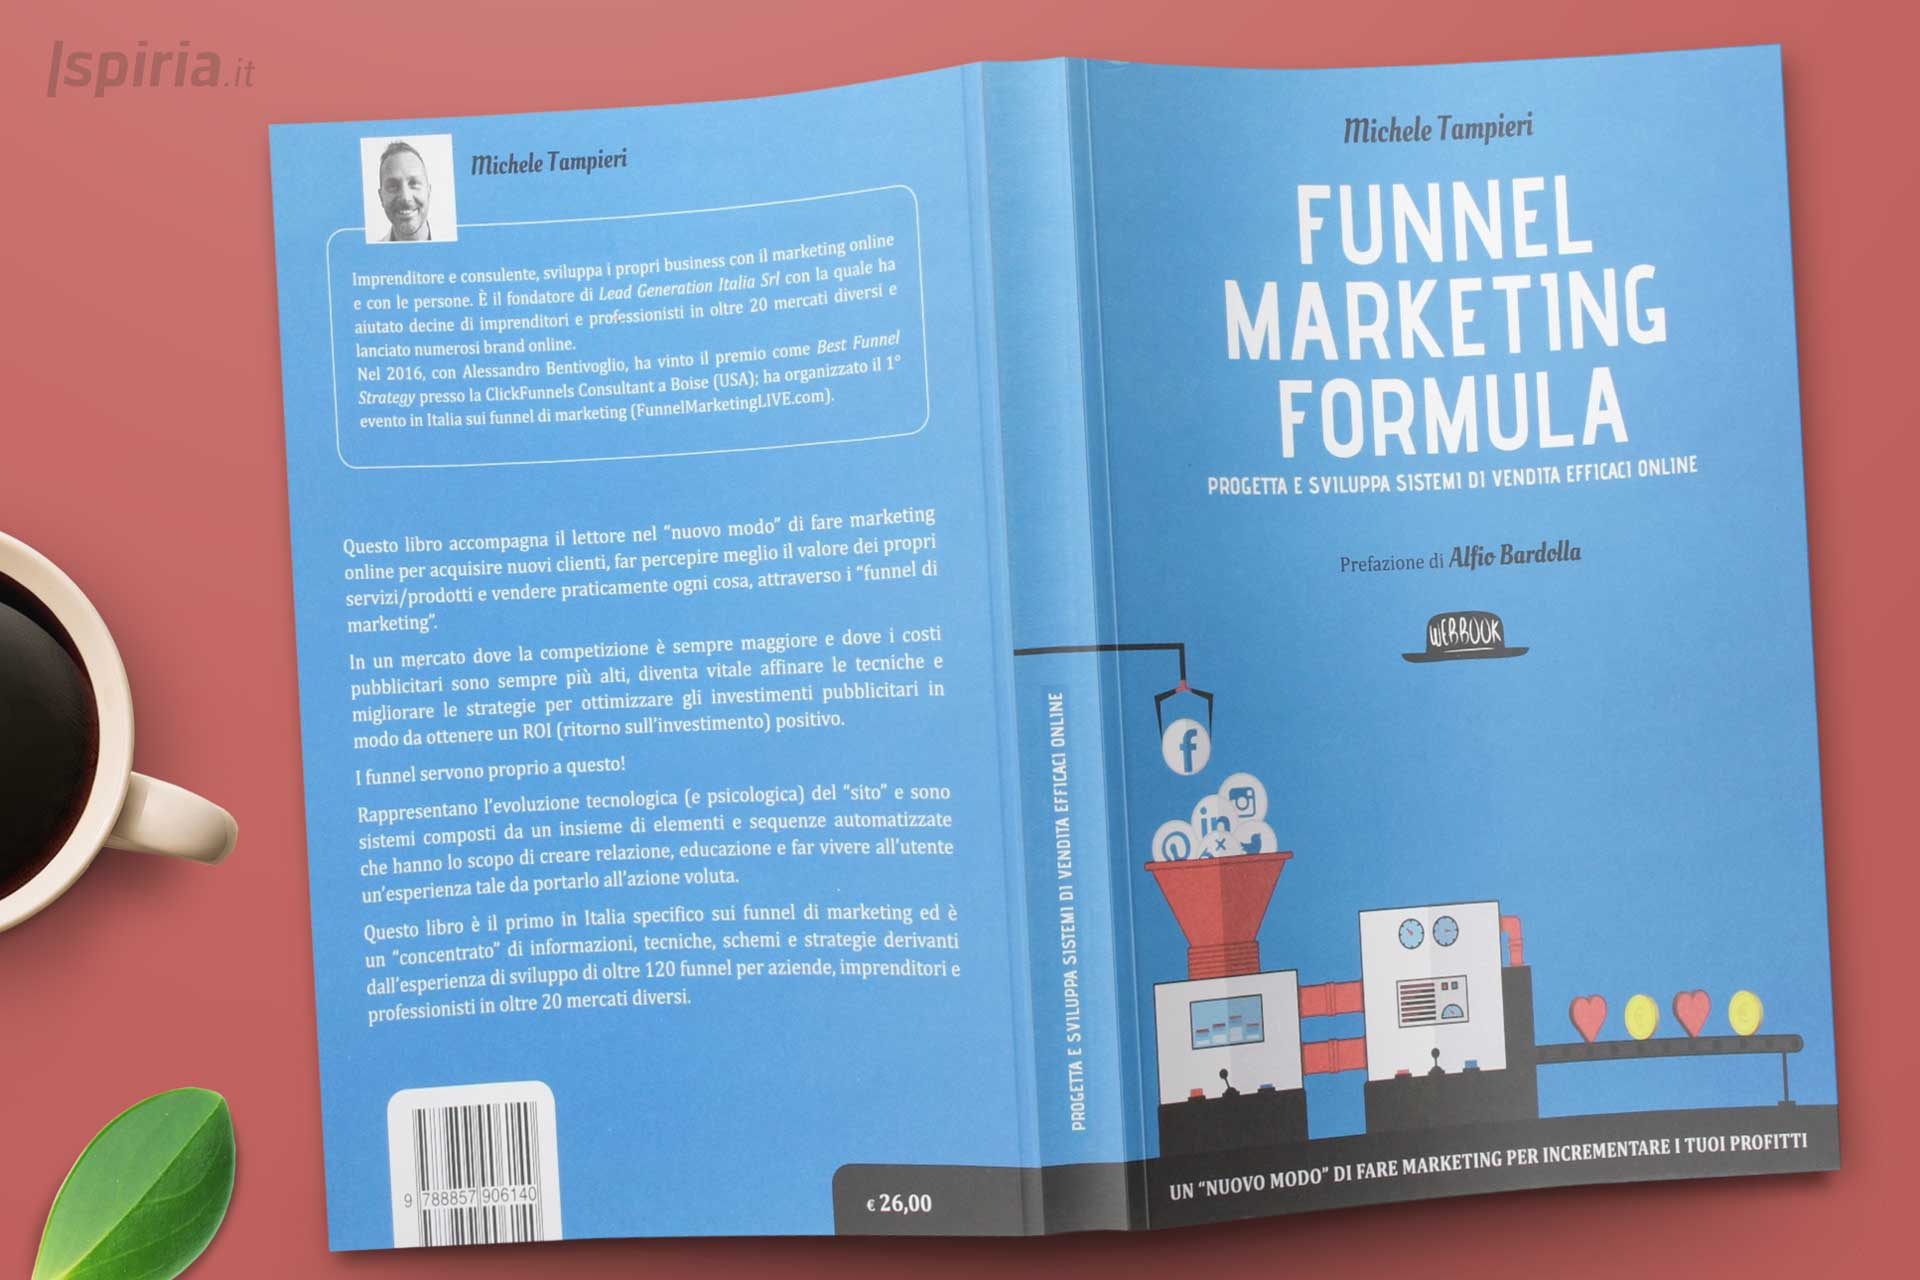 libro-funnel-marketing-formula-michele-tampieri